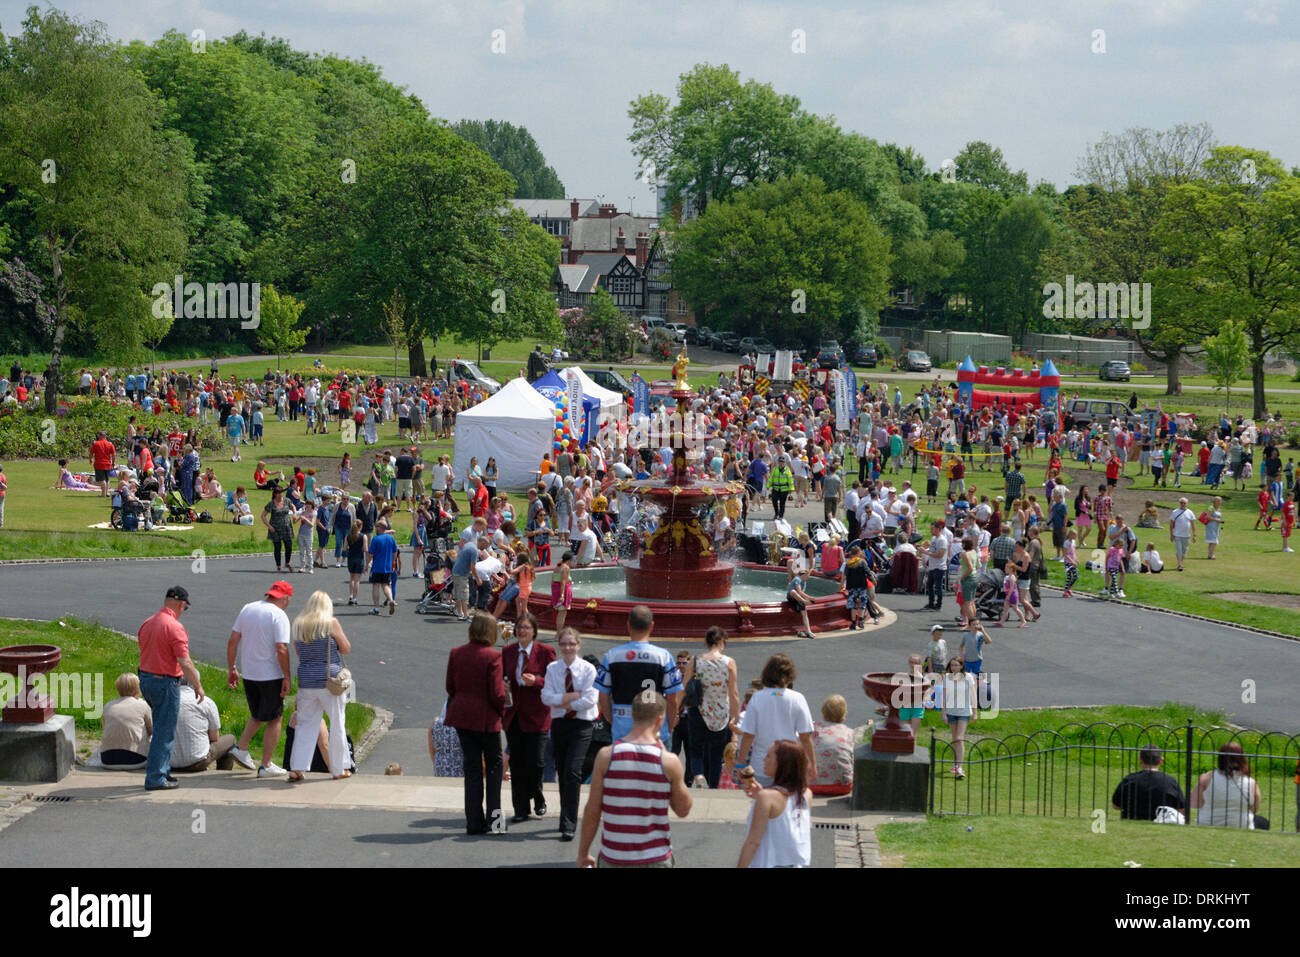 Crowds gather in Mesnes Park, Wigan, for the launch of the Wigan Youth Zone. - Stock Image